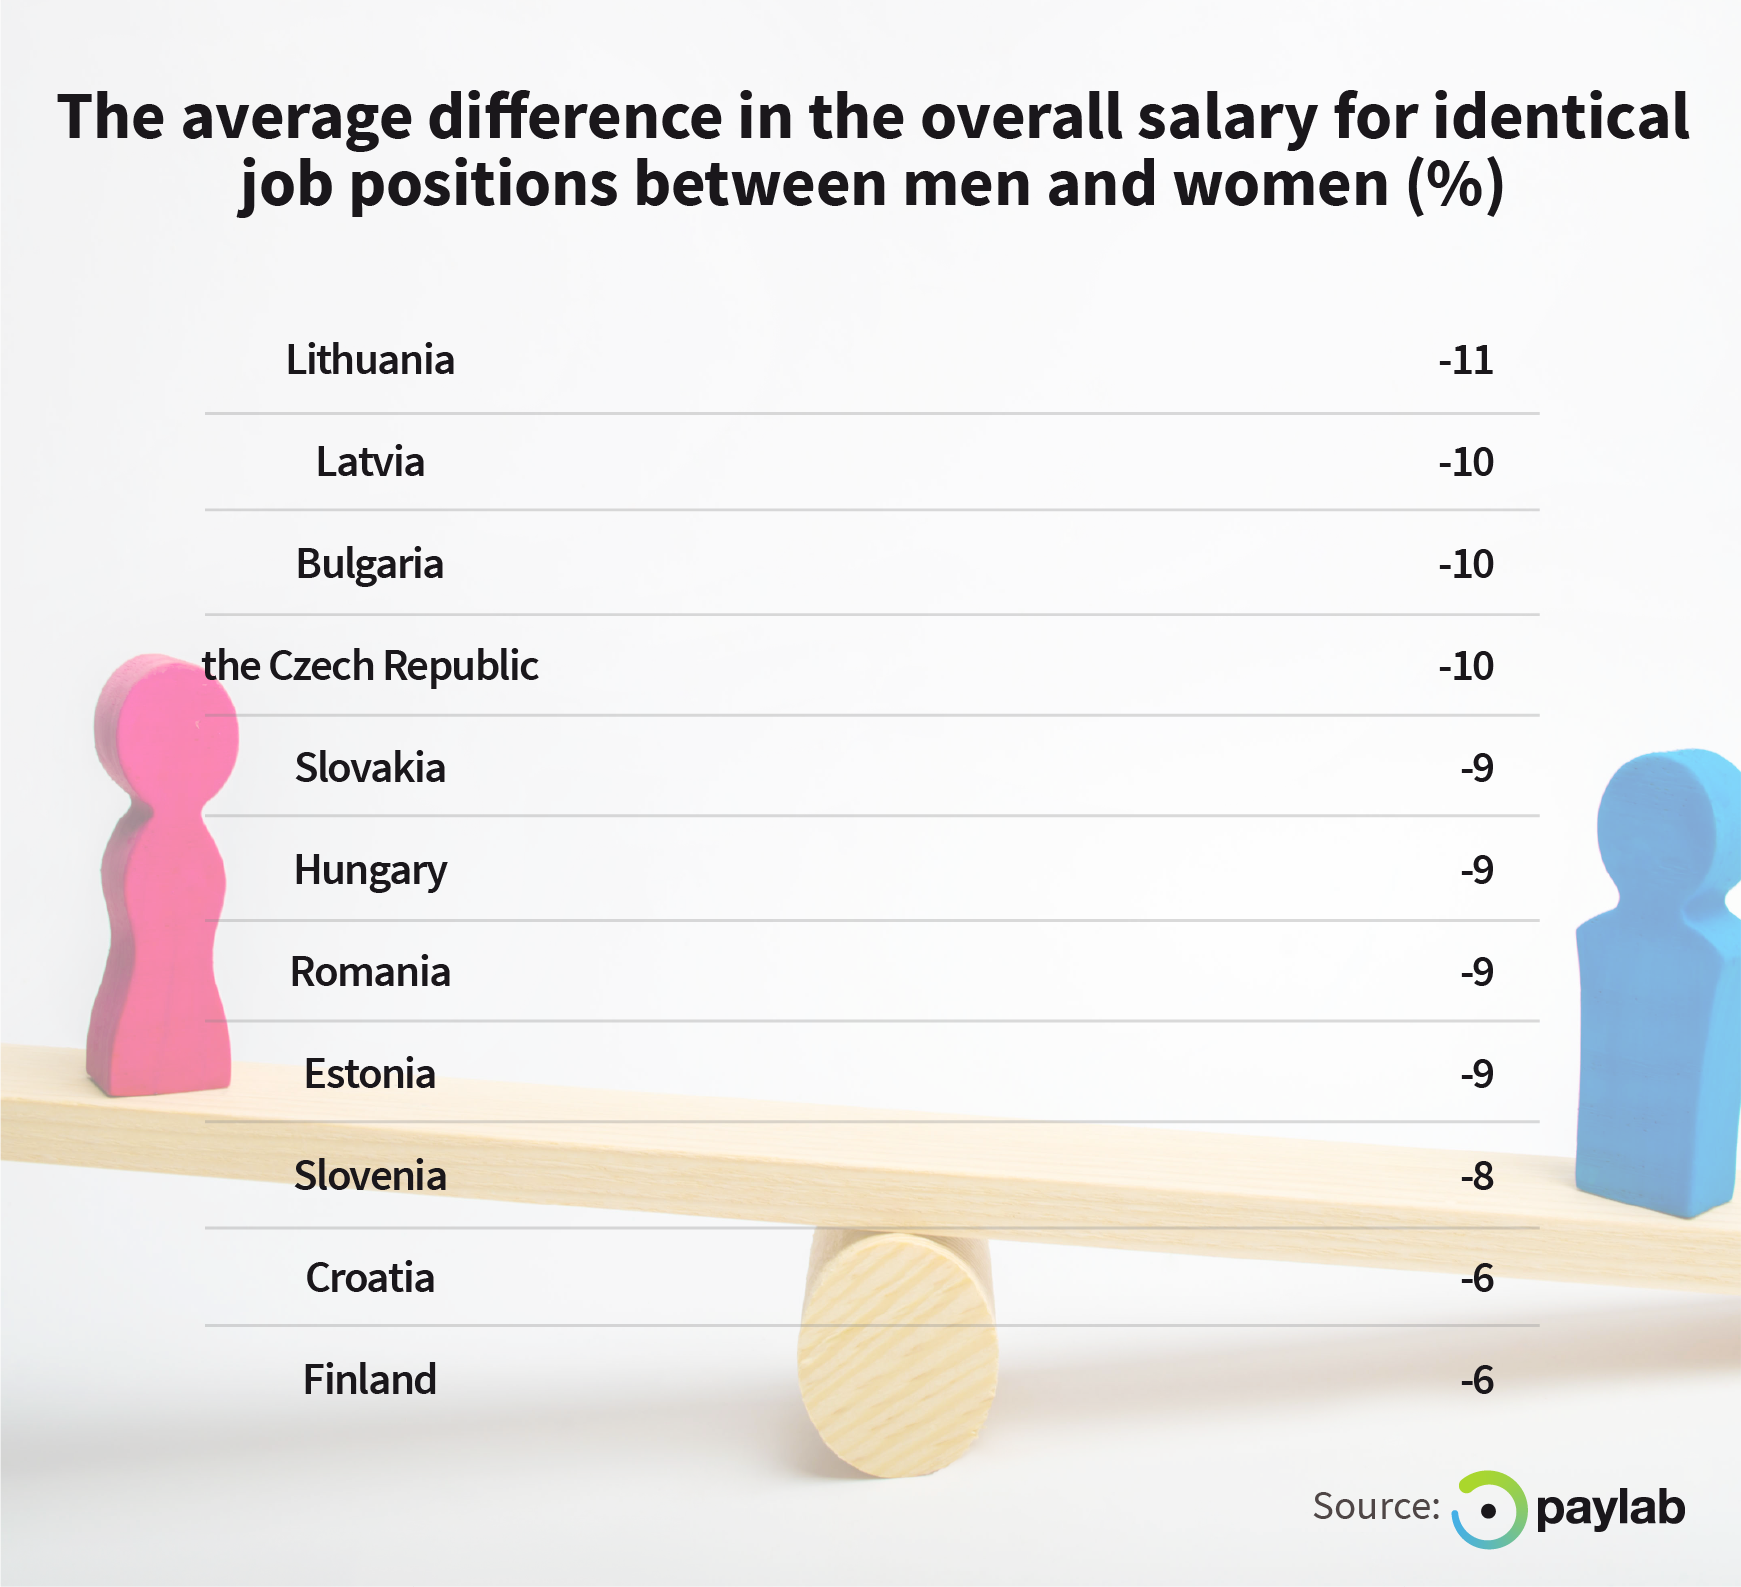 Women in Europe earn 9 per cent less compared to men